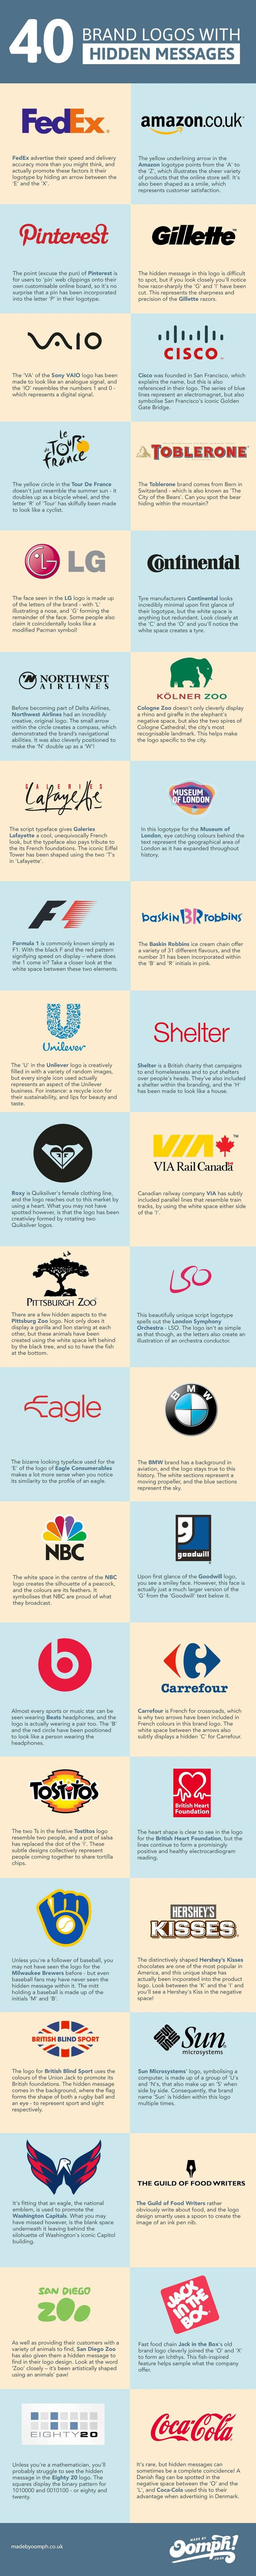 Hidden messages in some popular logos. Some quite funny to me. Others I think how did I miss that?!